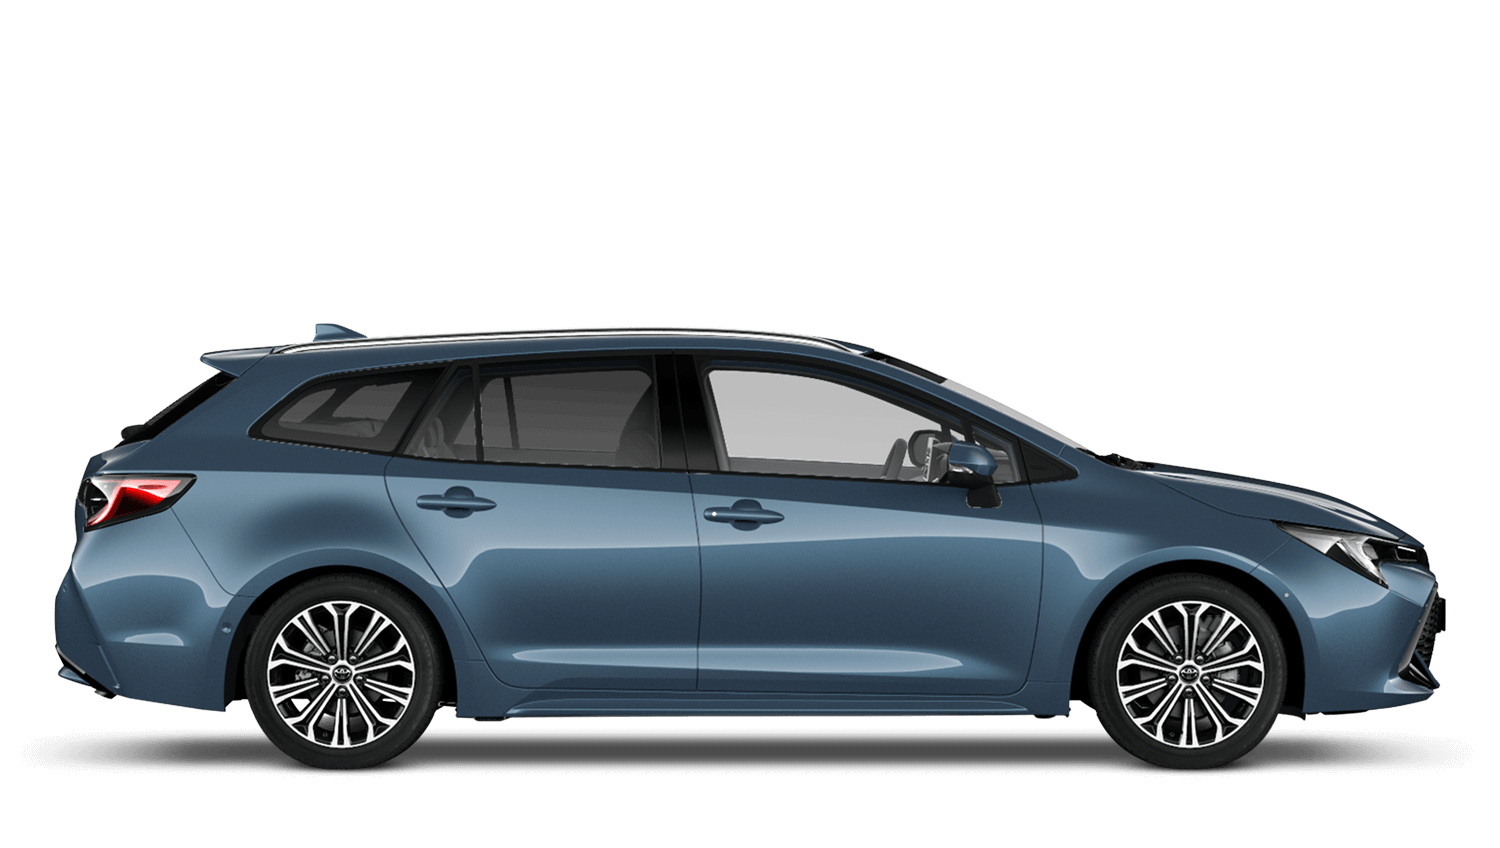 New Toyota Corolla Touring Sports Design | Finance ...